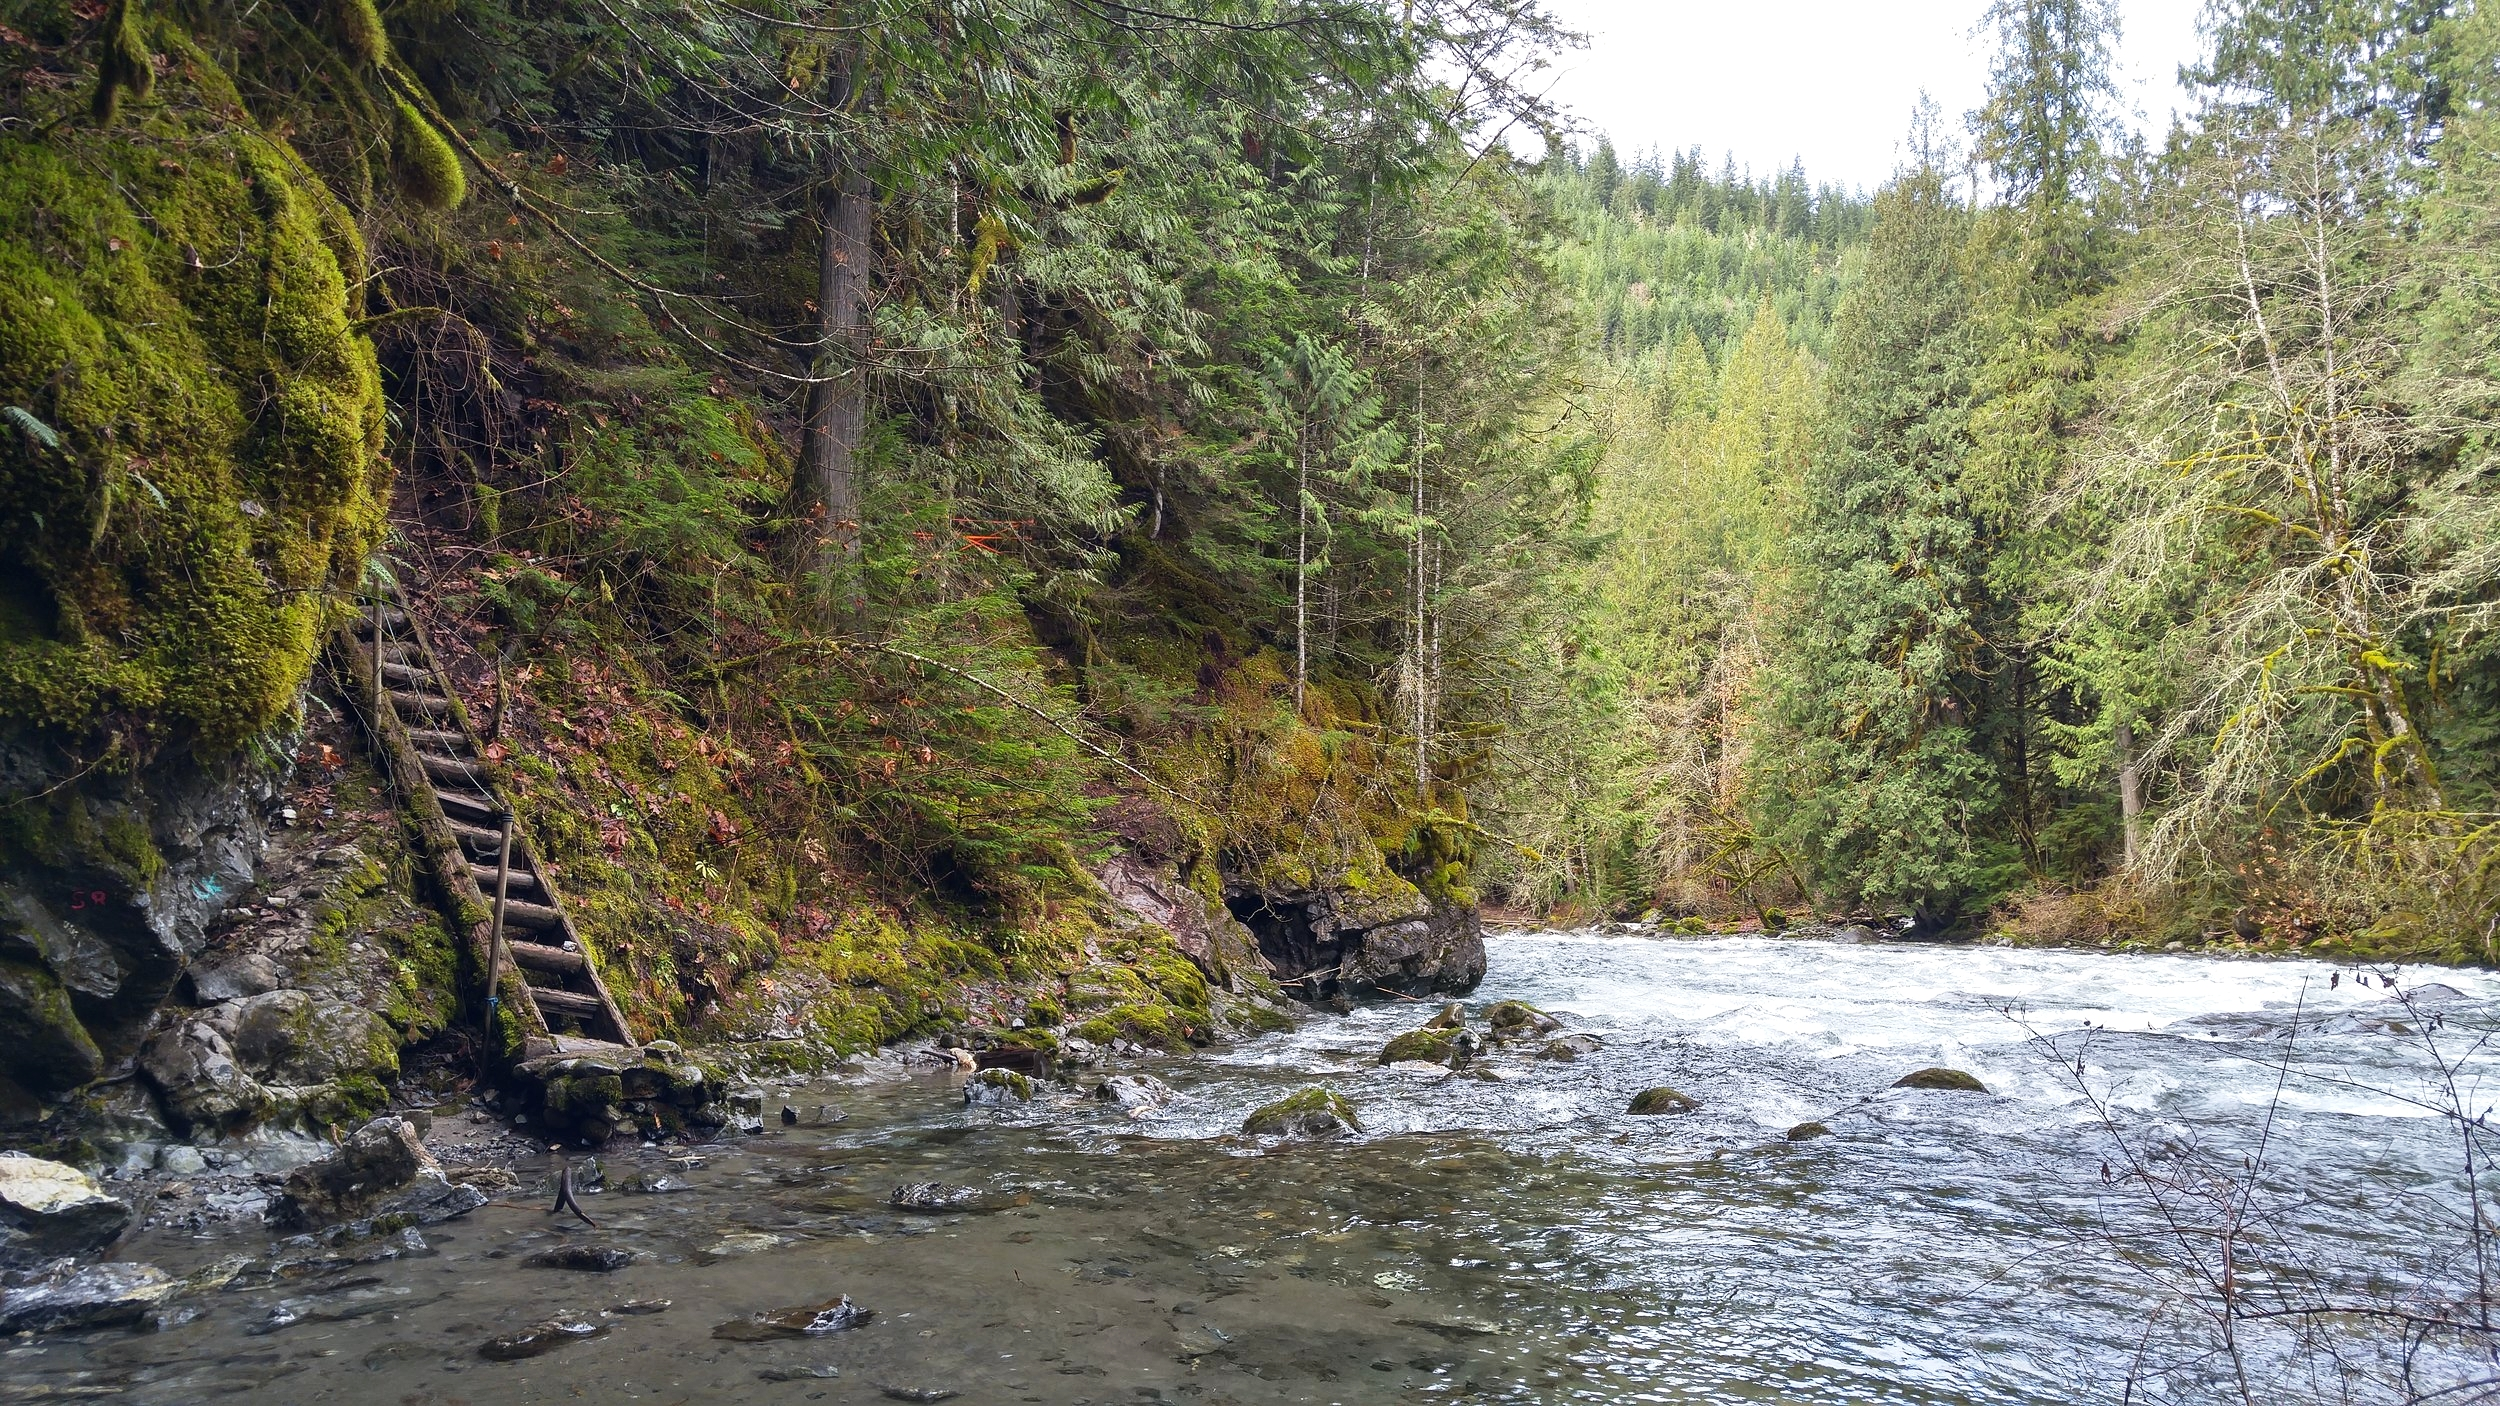 Introducing the Chilliwack River.